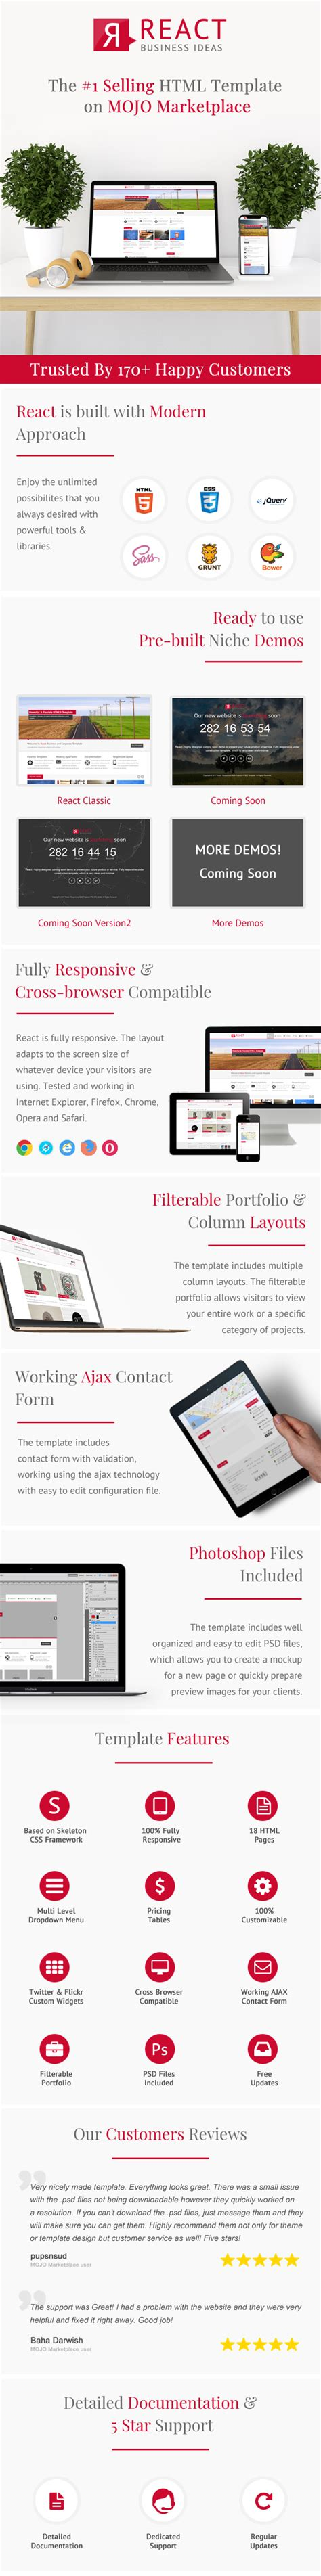 react multi purpose html5 template themes templates